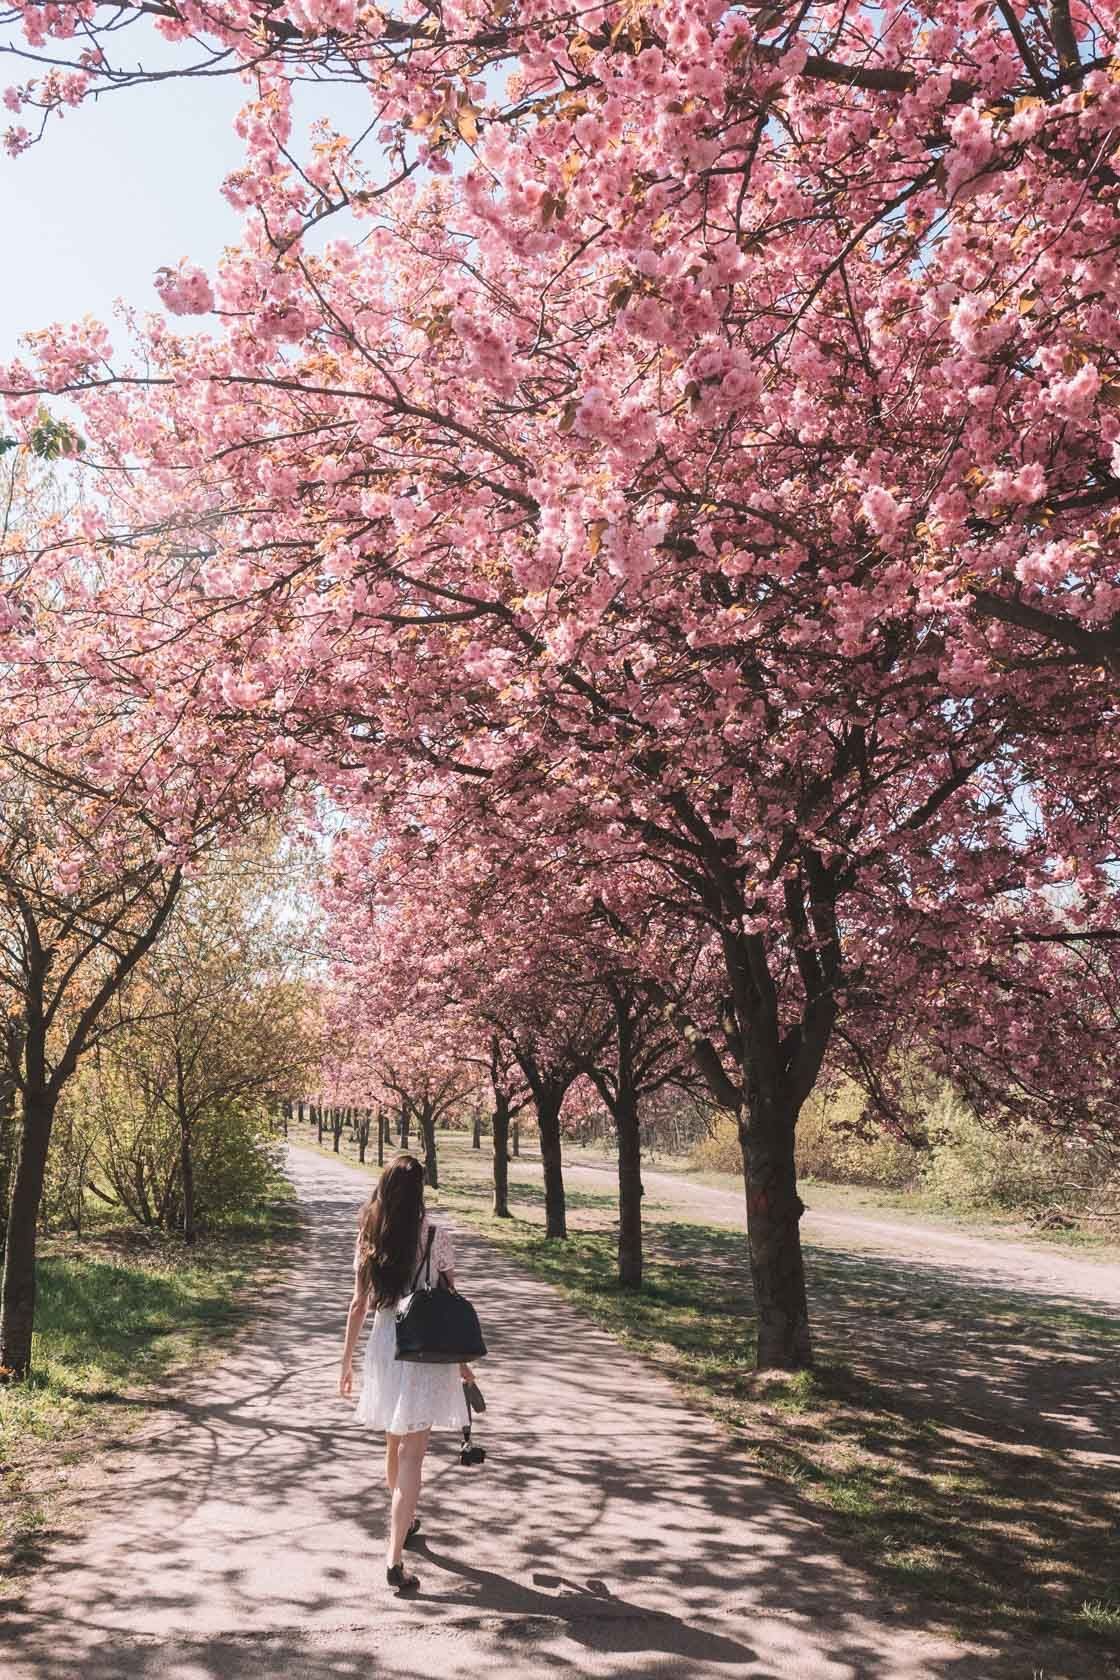 The Best Spots To View Cherry Blossoms In Berlin Berlin Travel Europe Trip Itinerary Europe Travel Outfits Summer